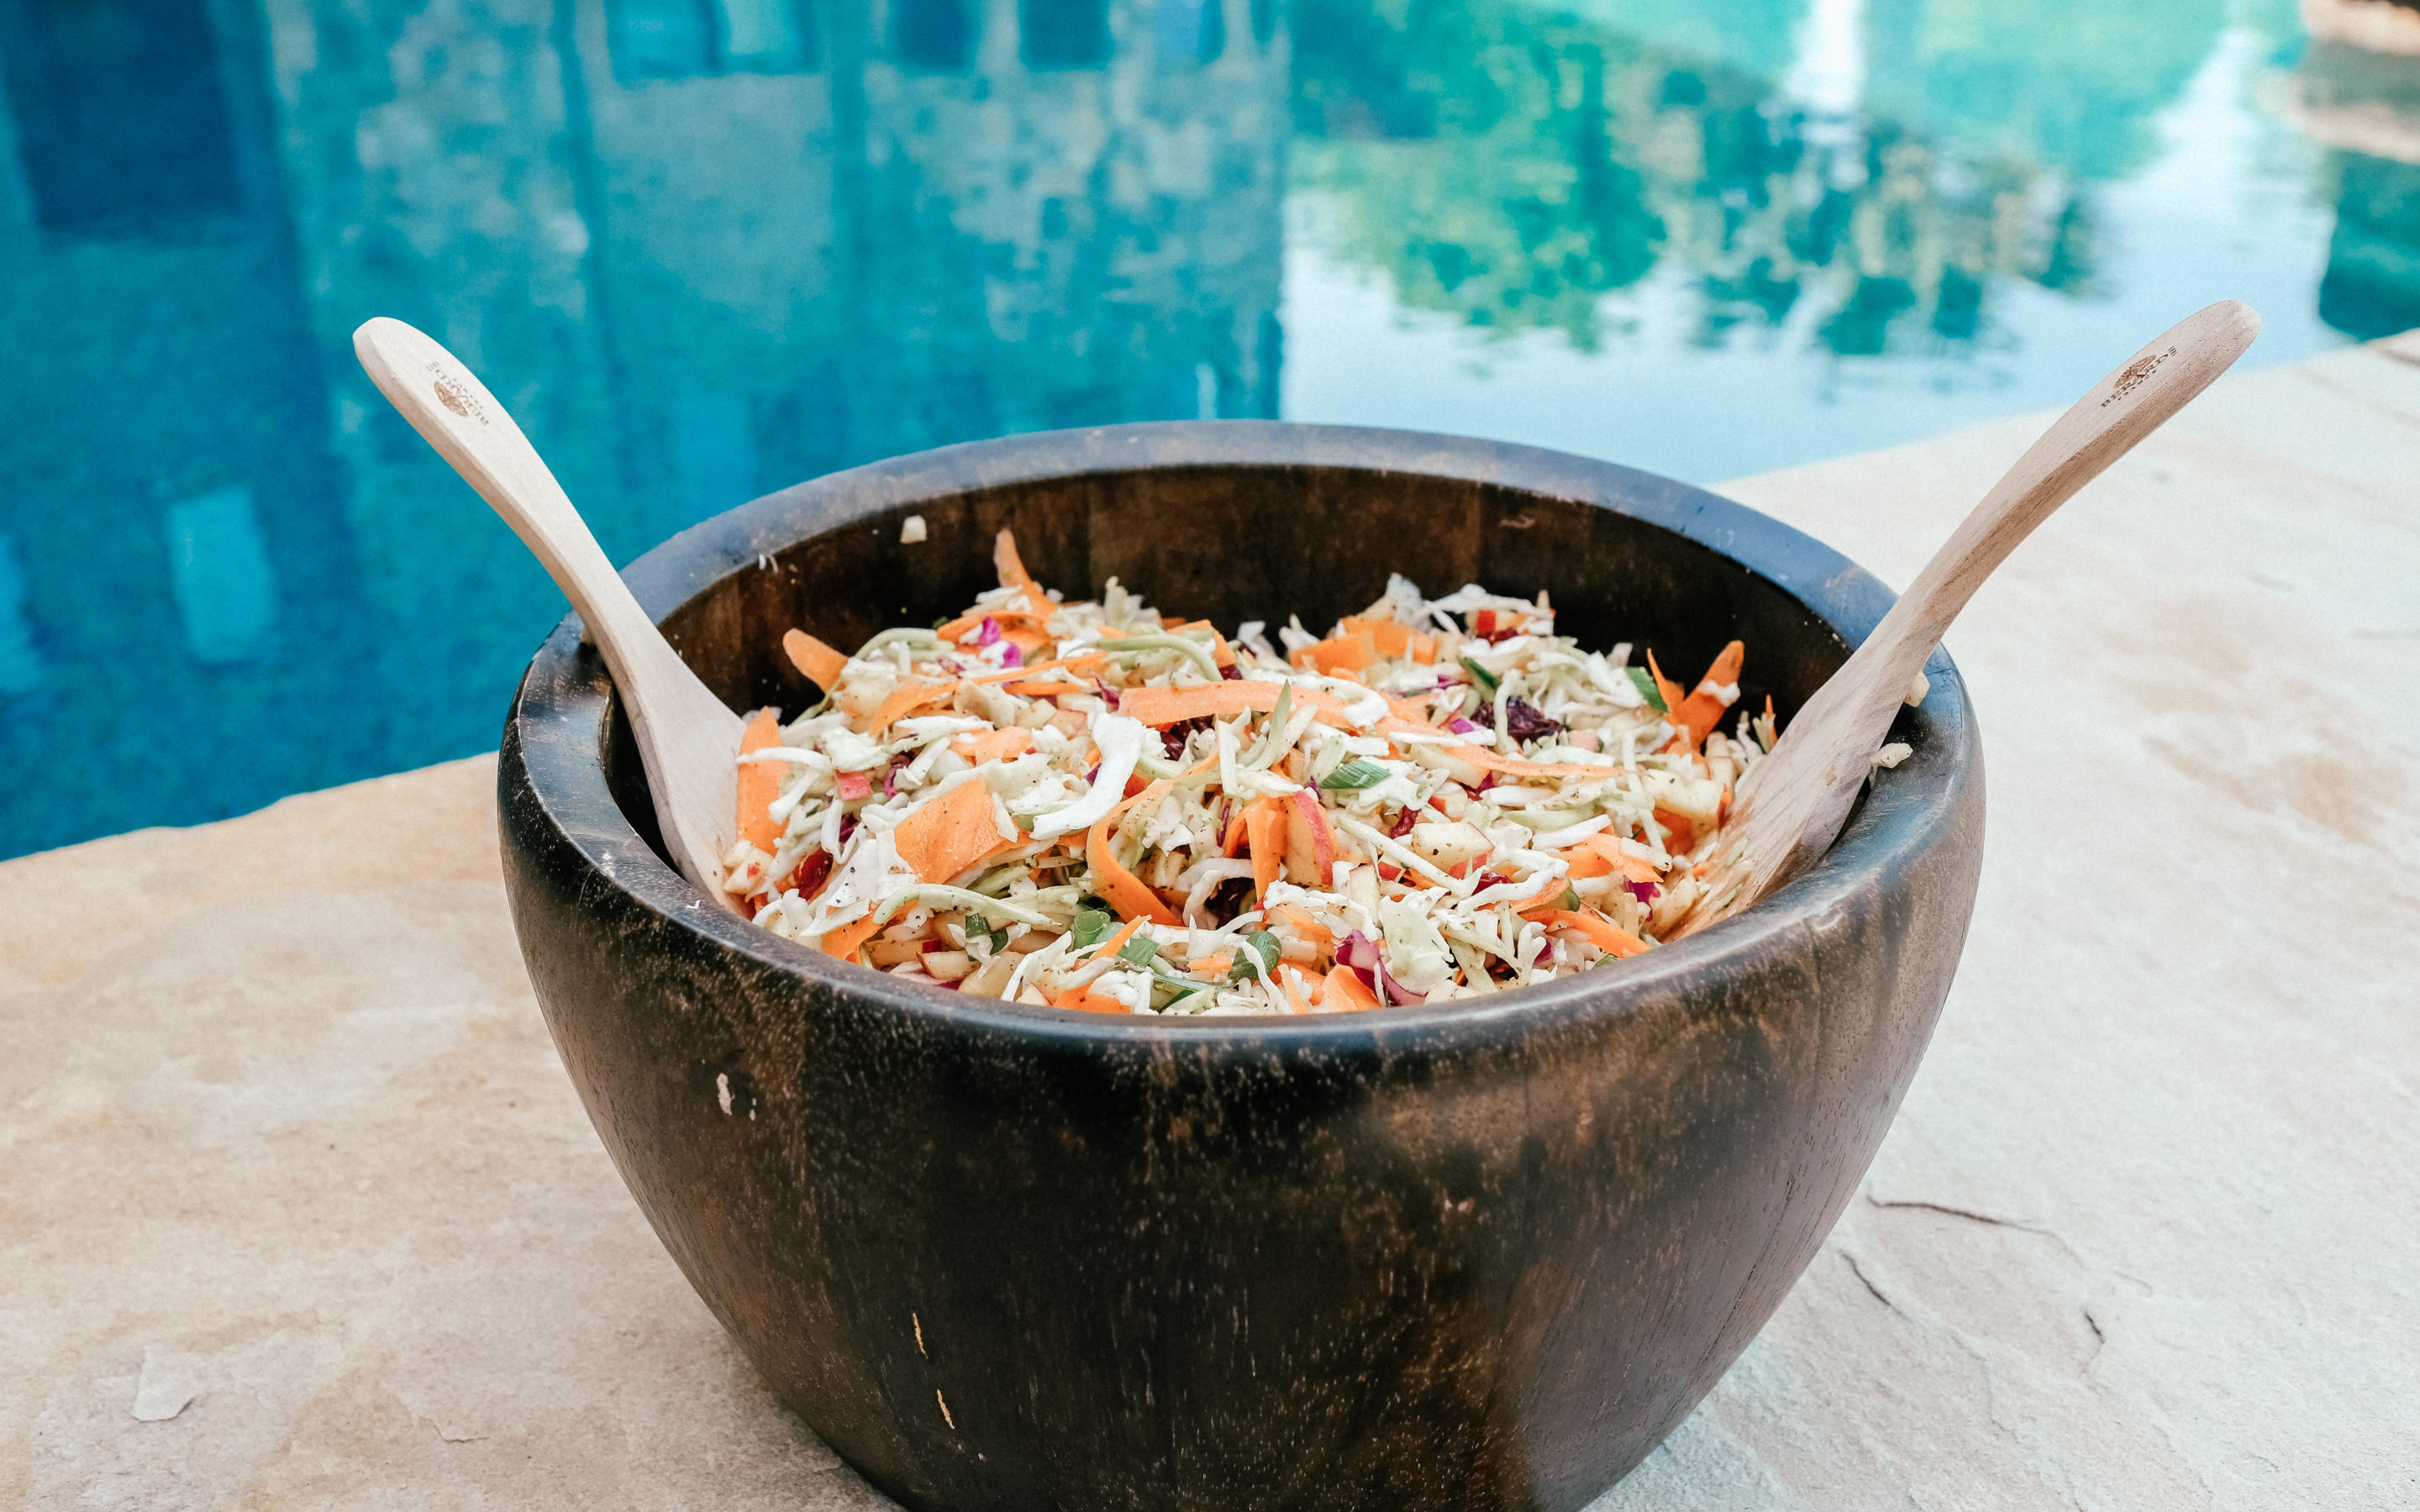 Healthy, Dairy Free Coleslaw for your Memorial Day Cookout